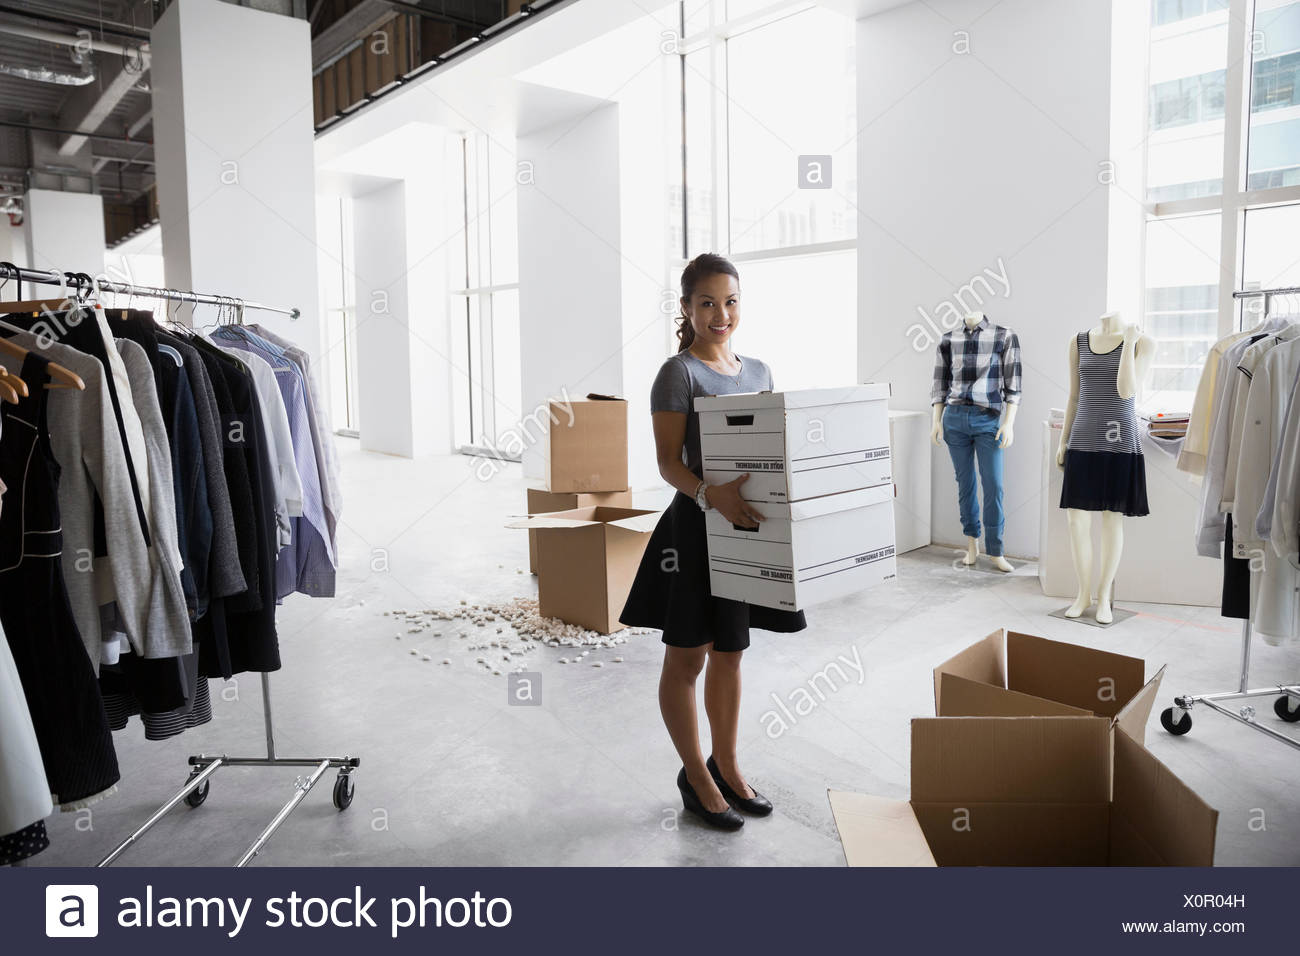 Portrait fashion stylist carrying boxes in studio - Stock Image